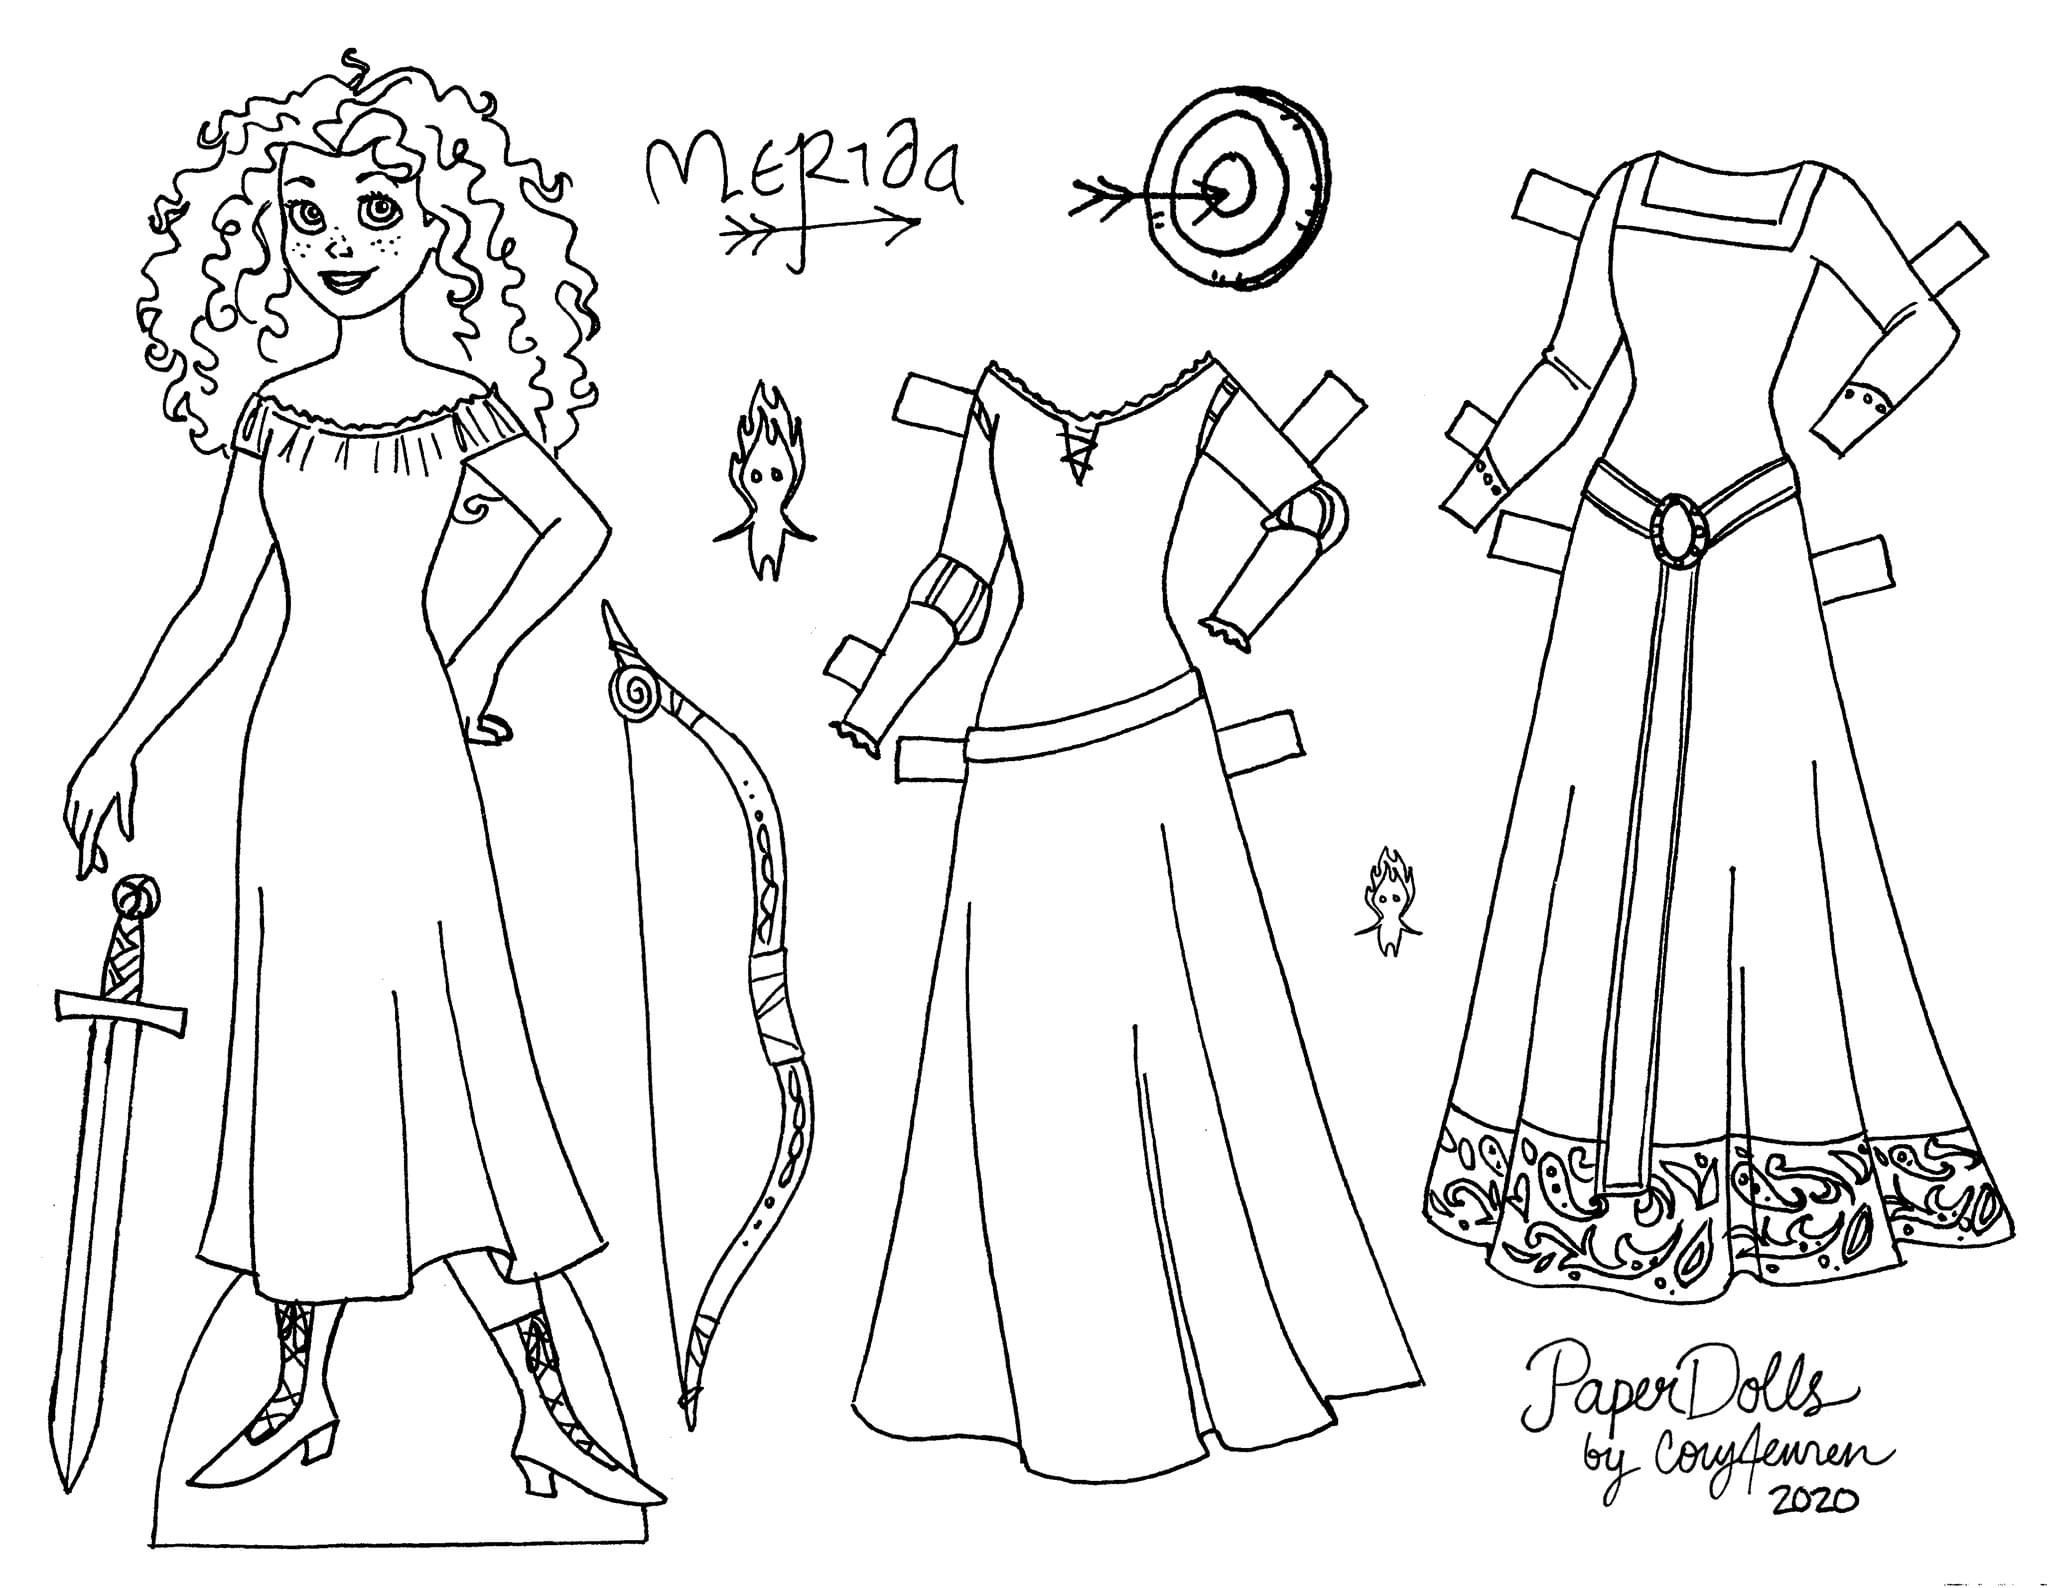 mermaid paper doll coloring pages click here for more marisole monday friends printable doll pages mermaid coloring paper